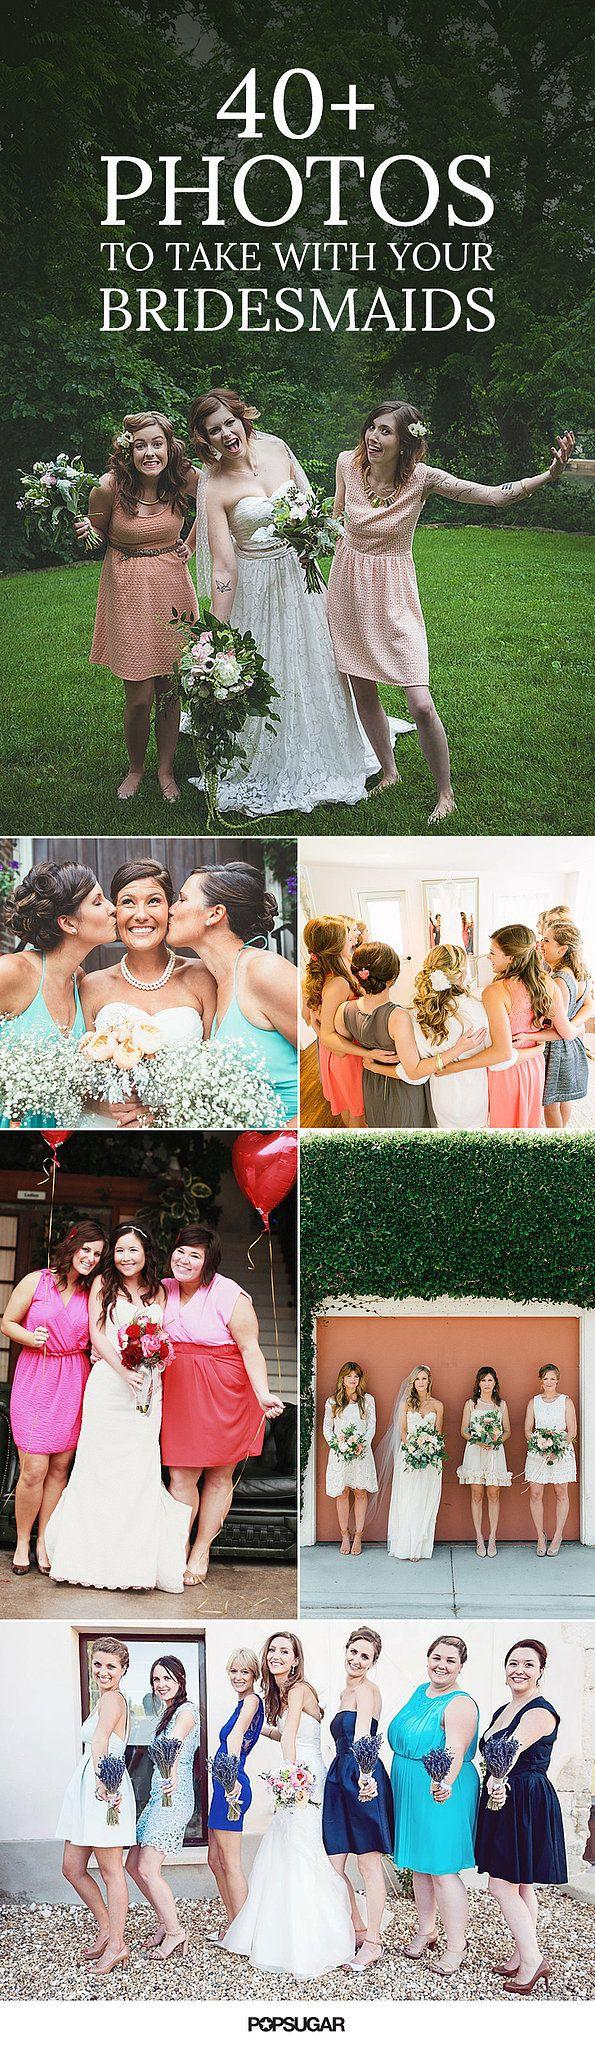 Wedding - 40  Adorable Photos You Need To Take With Your Bridesmaids